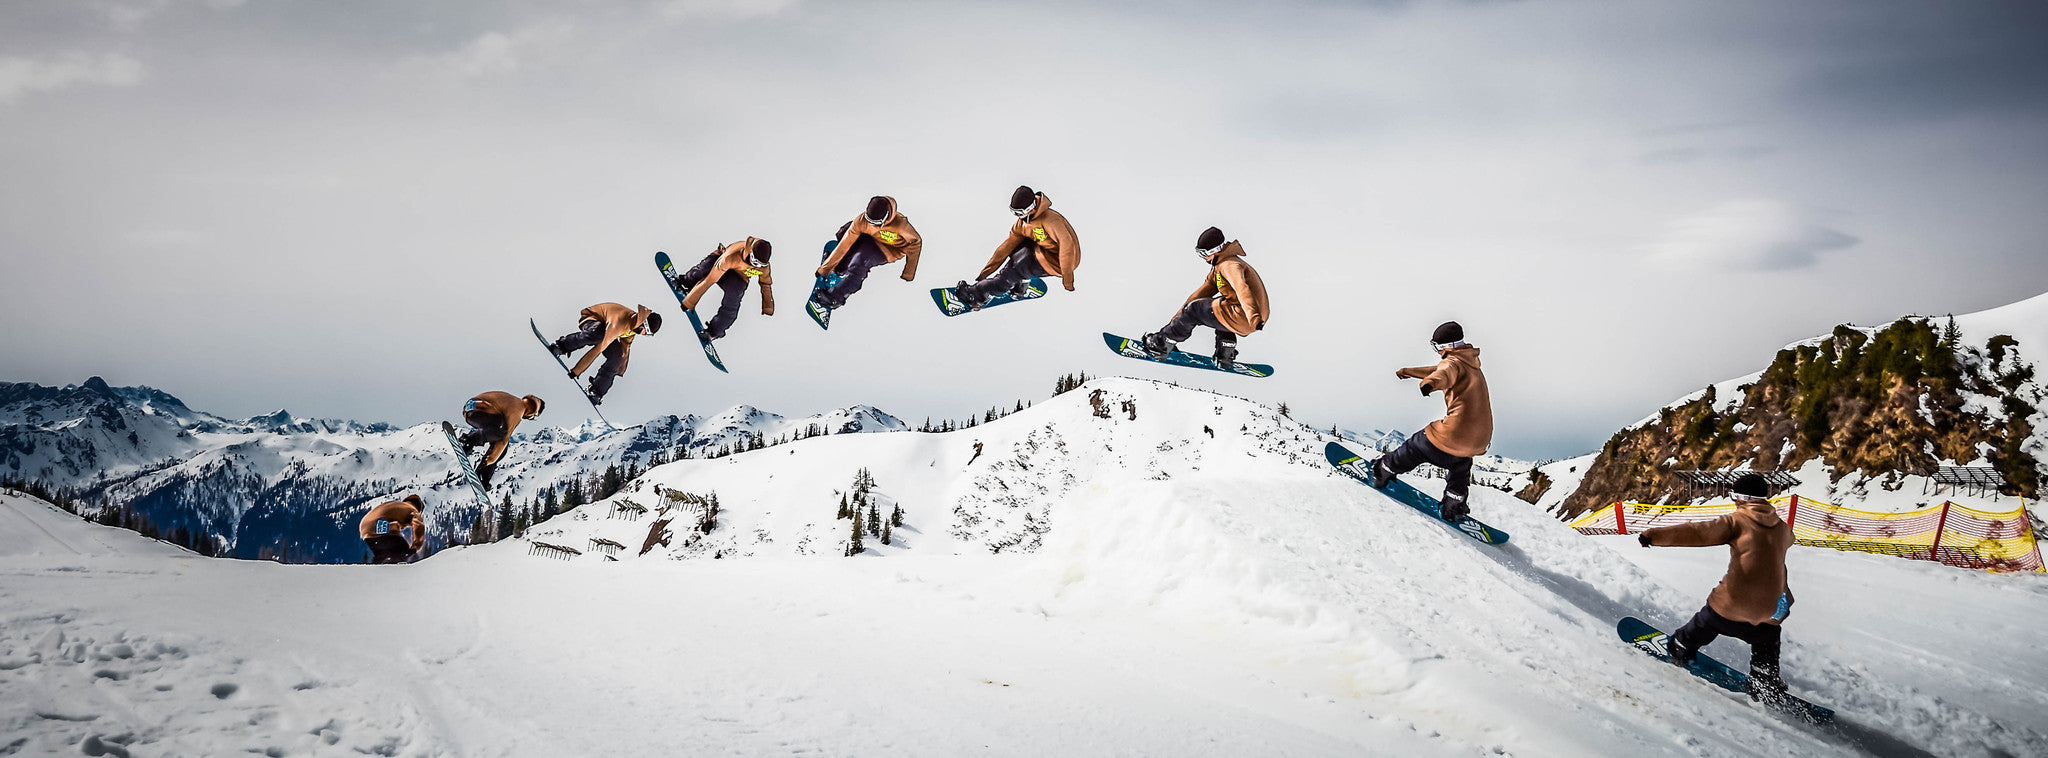 Time to learn your next snowboard trick! Photo: Wolf Wieser